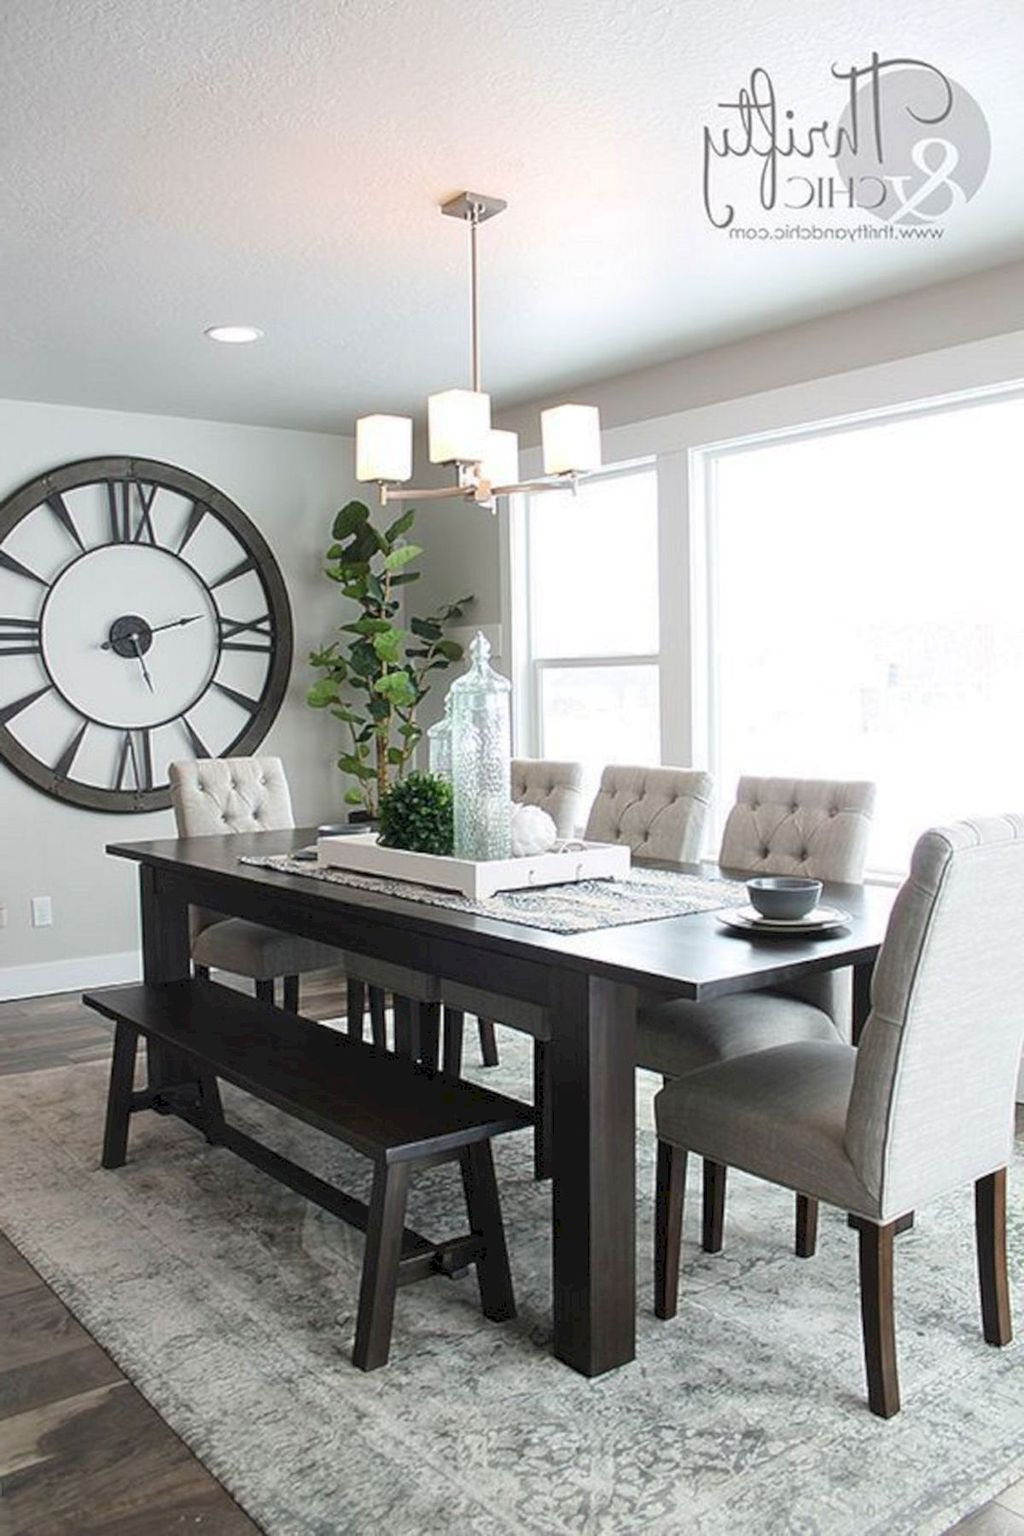 Table Dining Table Centrepiece Living Room Furniture Property In 2020 Dining Room Small Dining Room Table Decor Dinning Room Decor